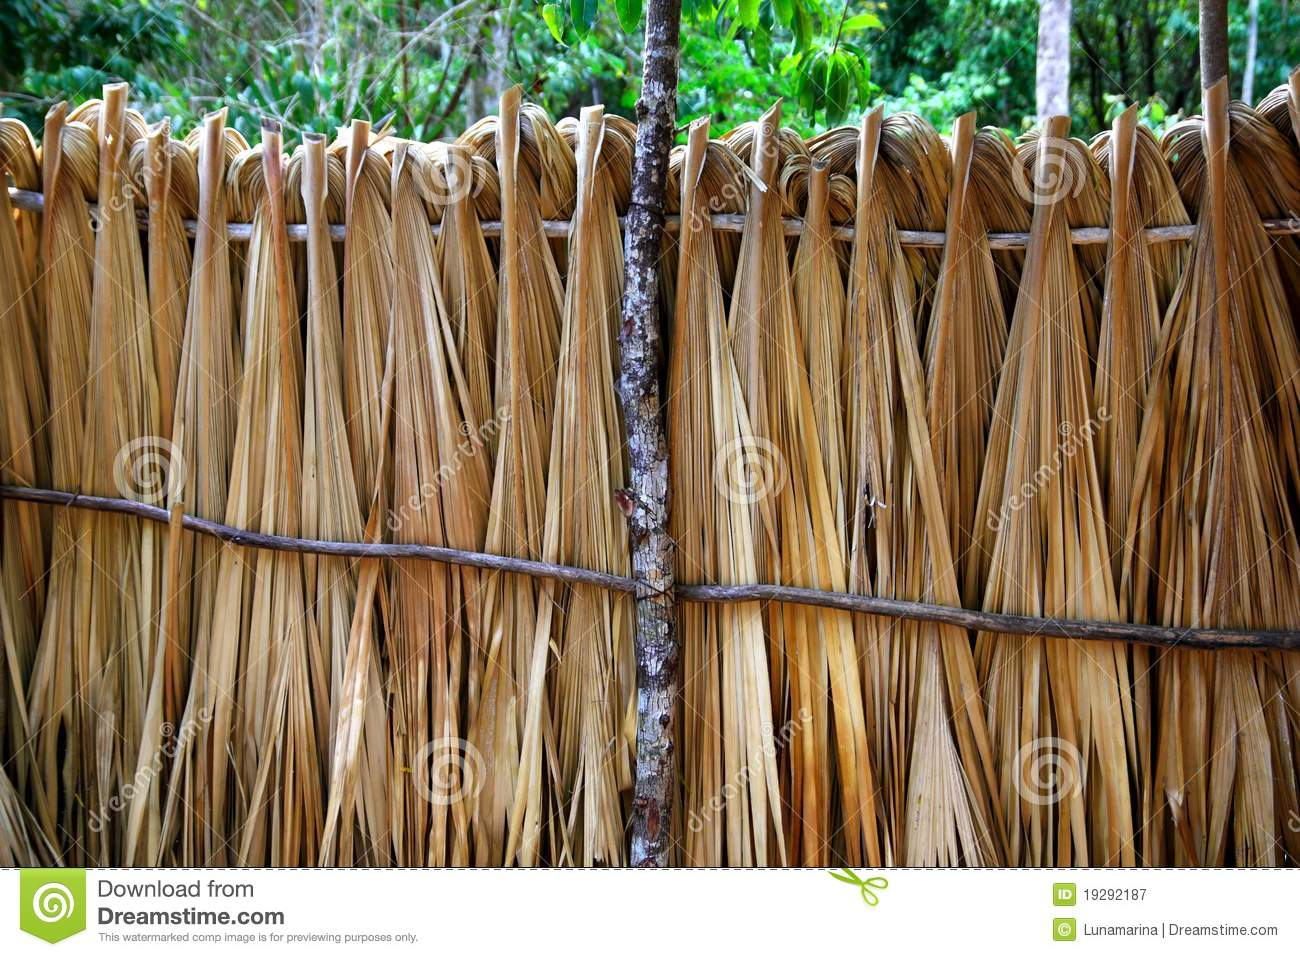 Mayan palm tree leaves wood fence in rainforest stock